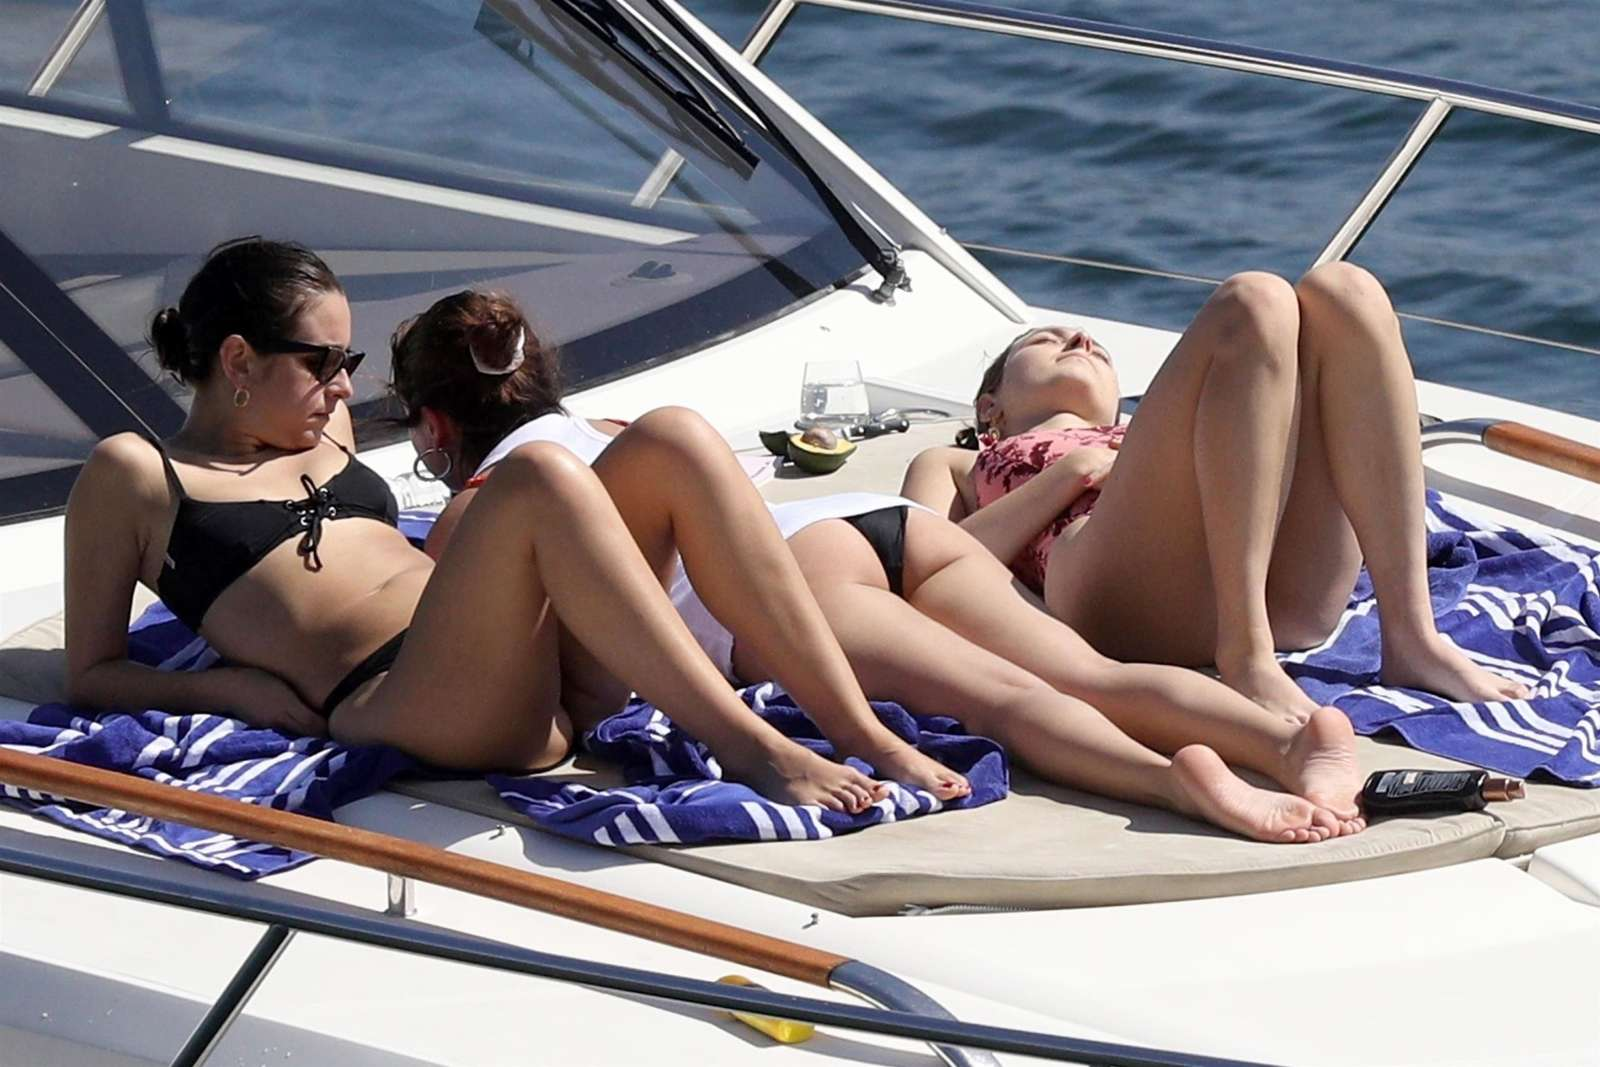 selena-gomez-wearing-a-bikini-on-a-boat-in-australia-6232